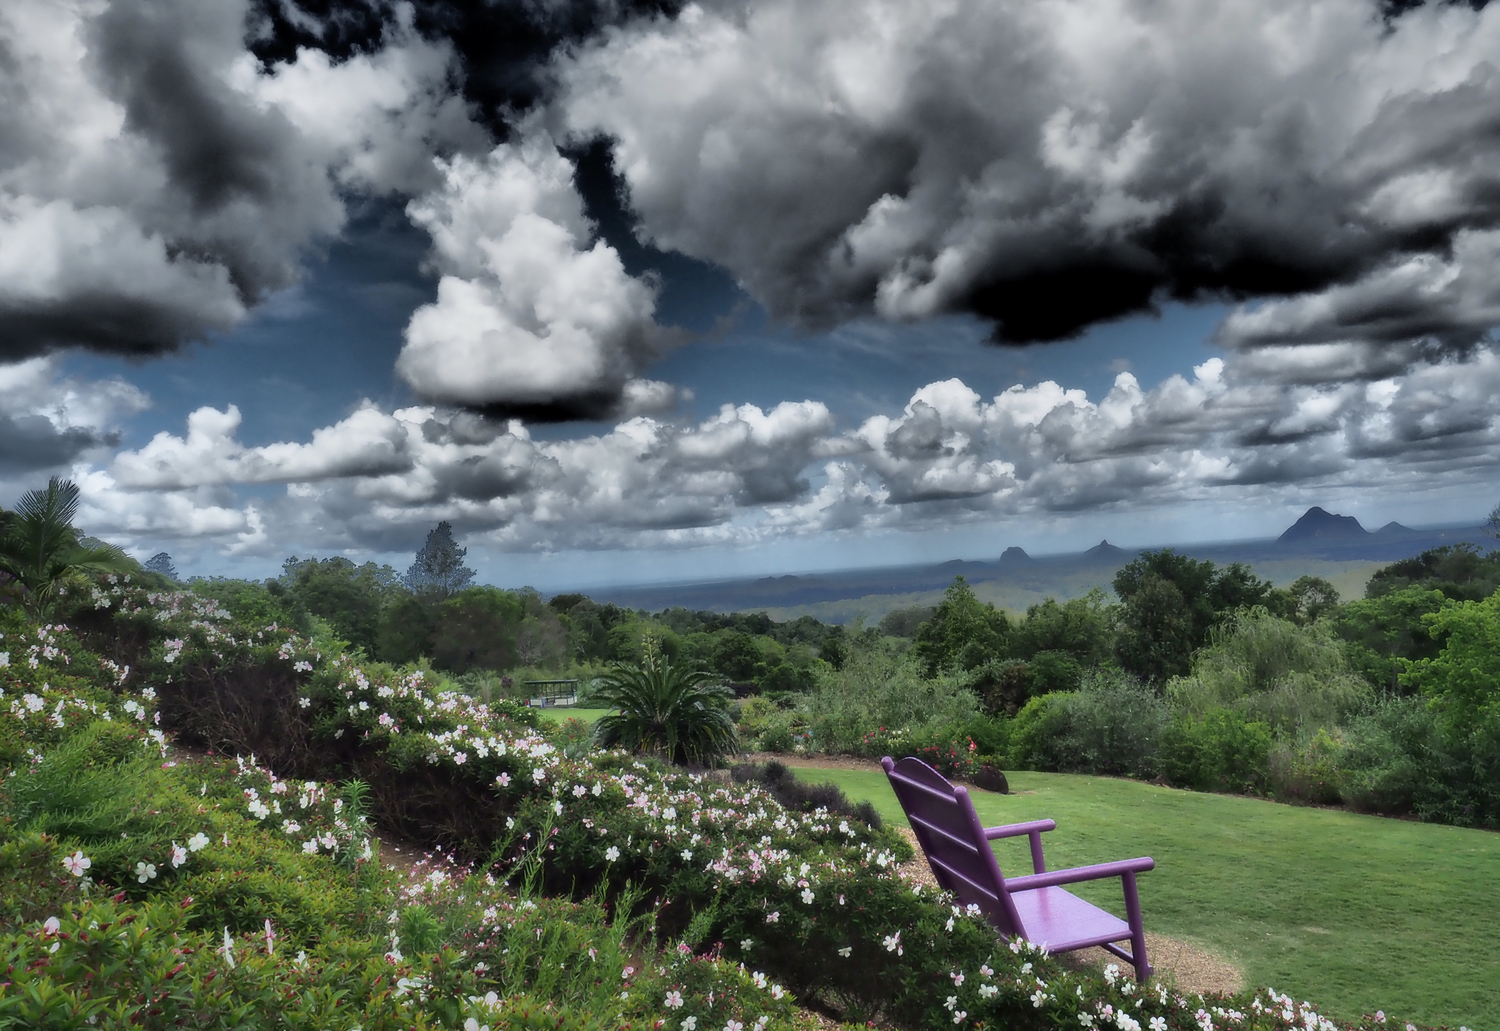 The Purple Chair (Framed)